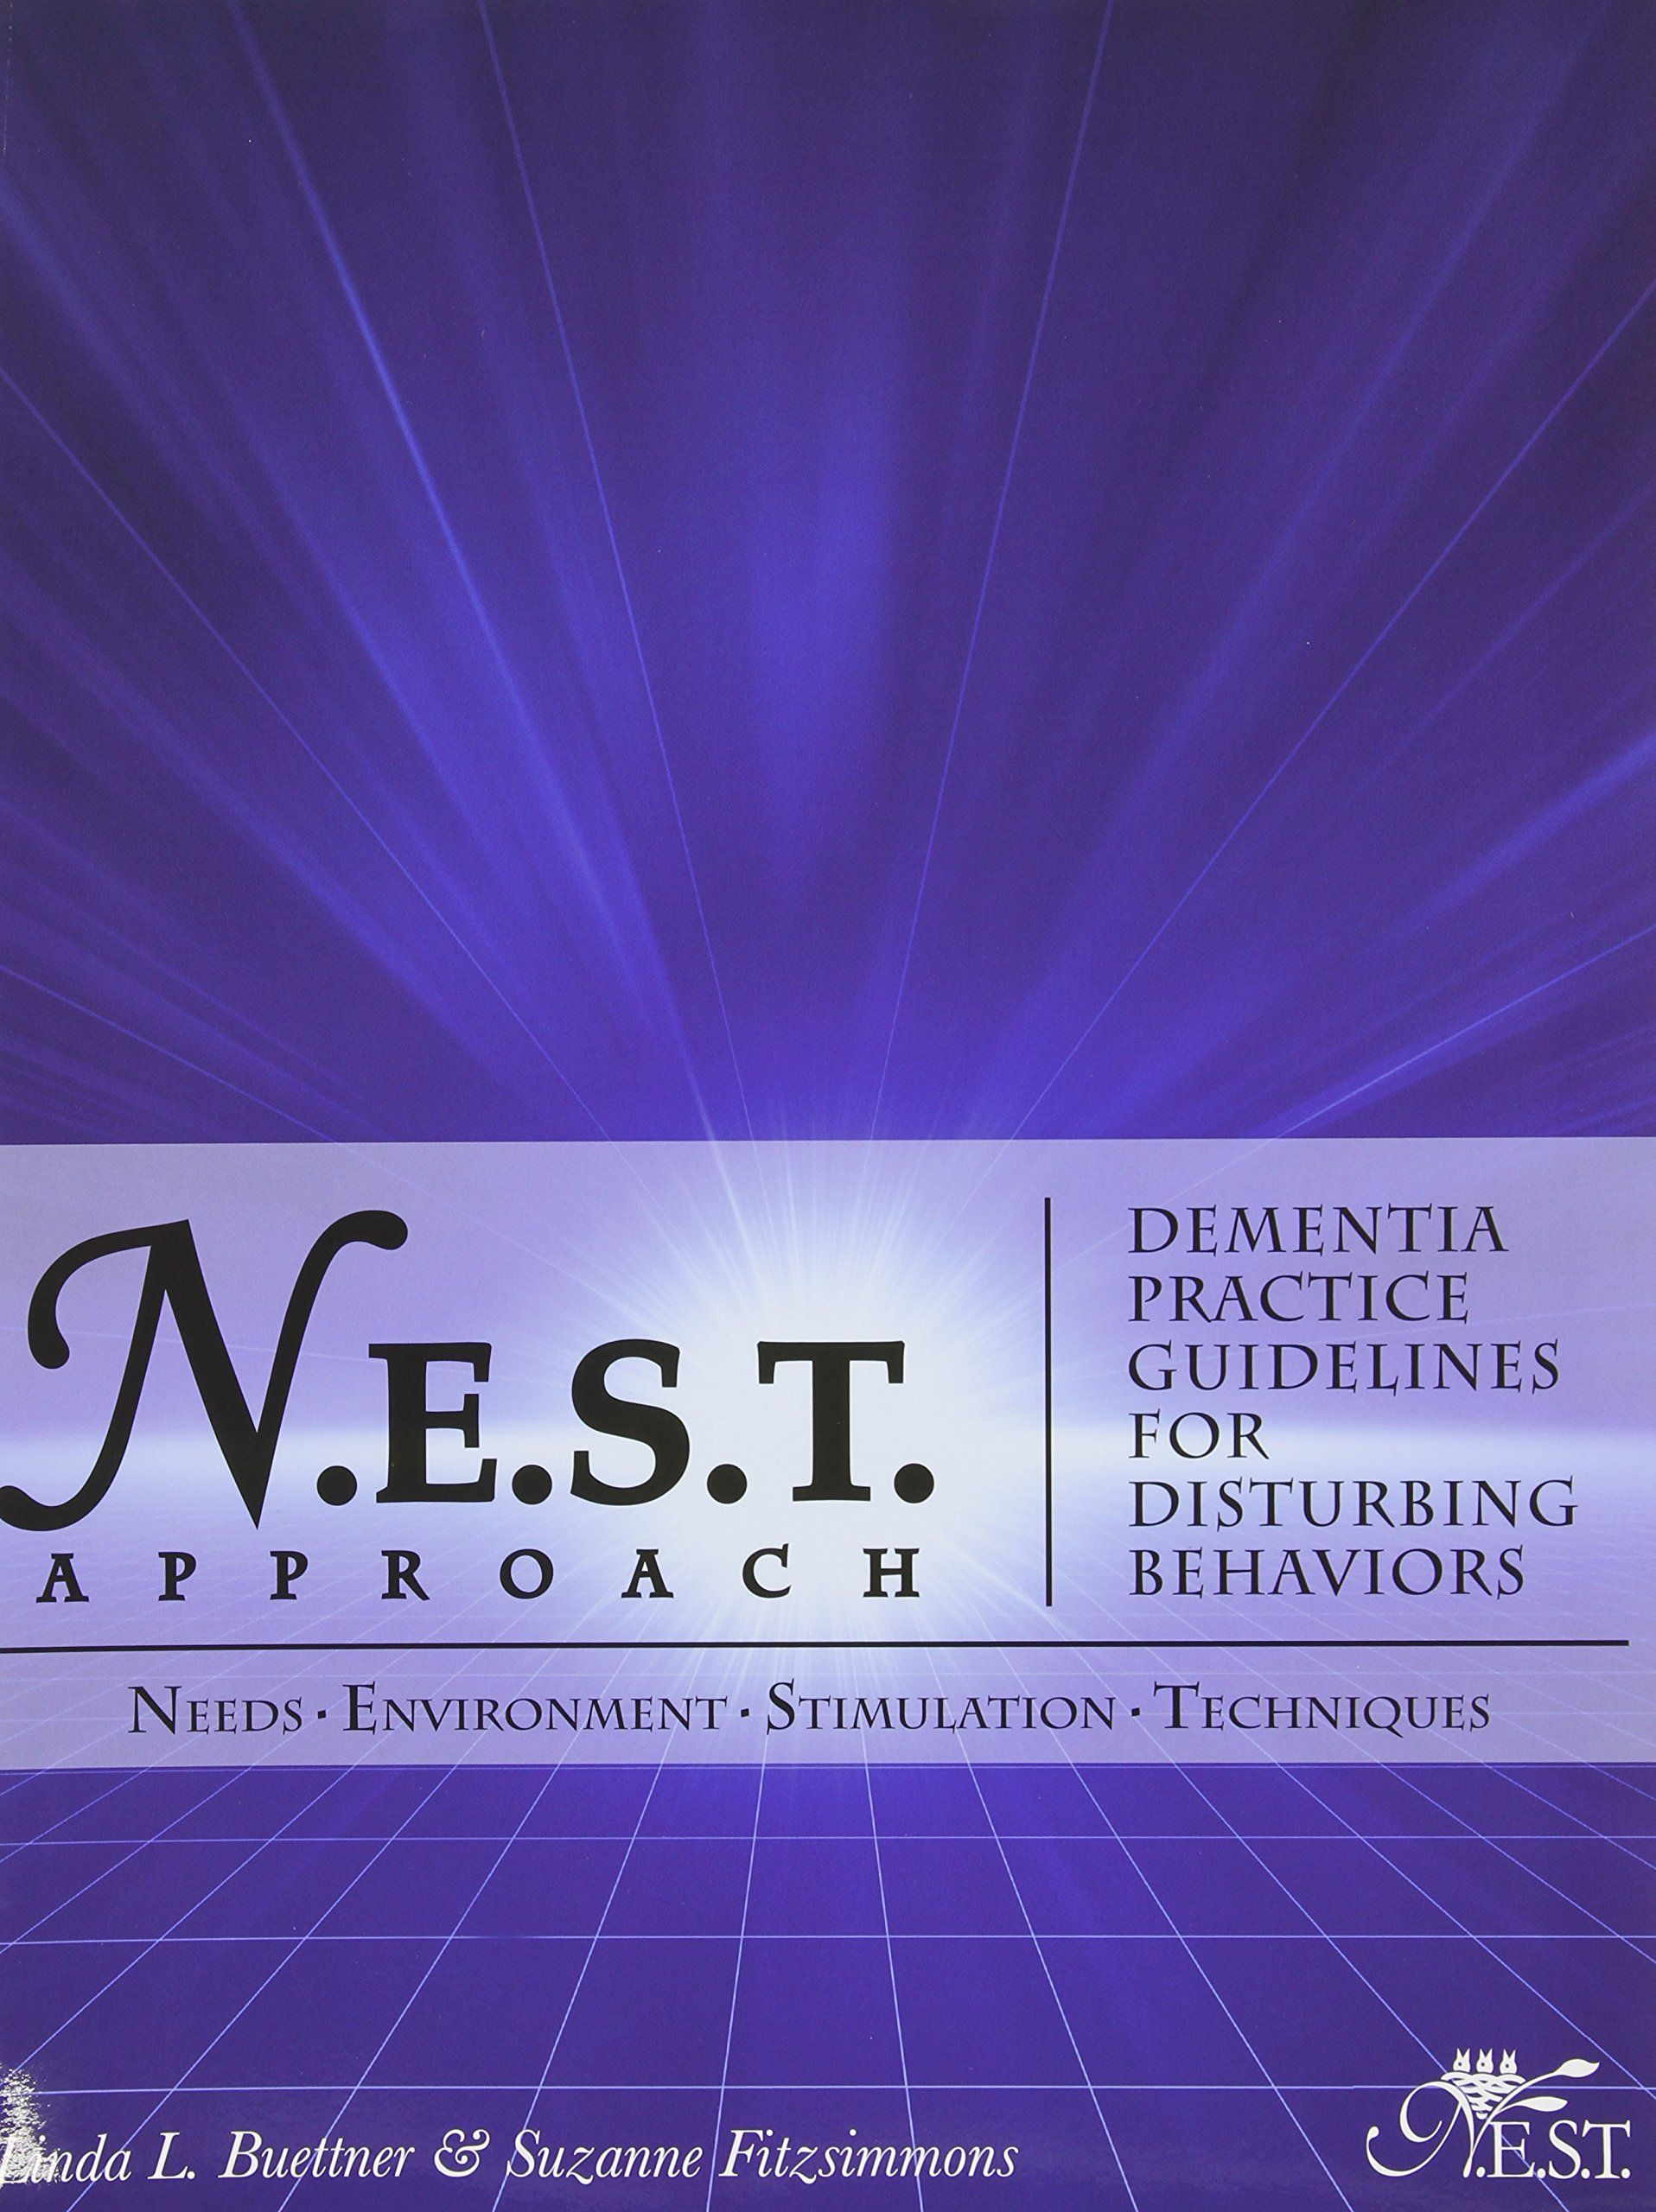 N.E.S.T. Approach Dementia Practice Guidelines for